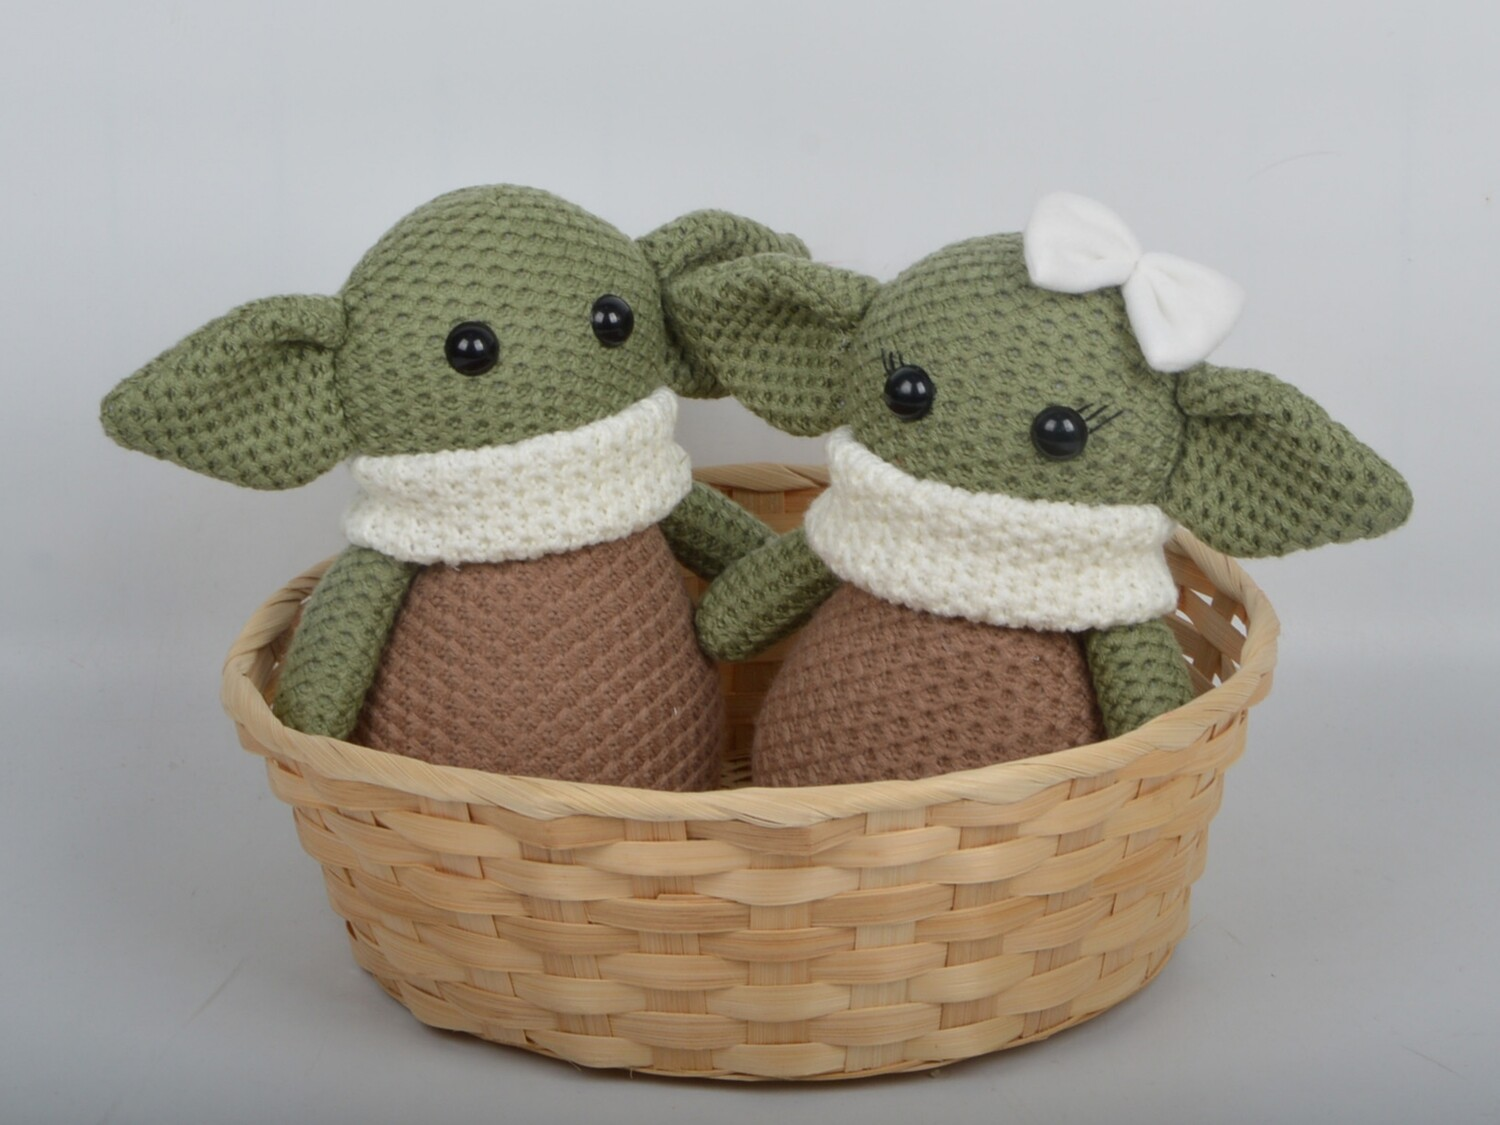 Baby Yoda Mr and Ms Adorable Grogu The Child Stuffed Decoration Dolls-AVAILABLE MAY 2021